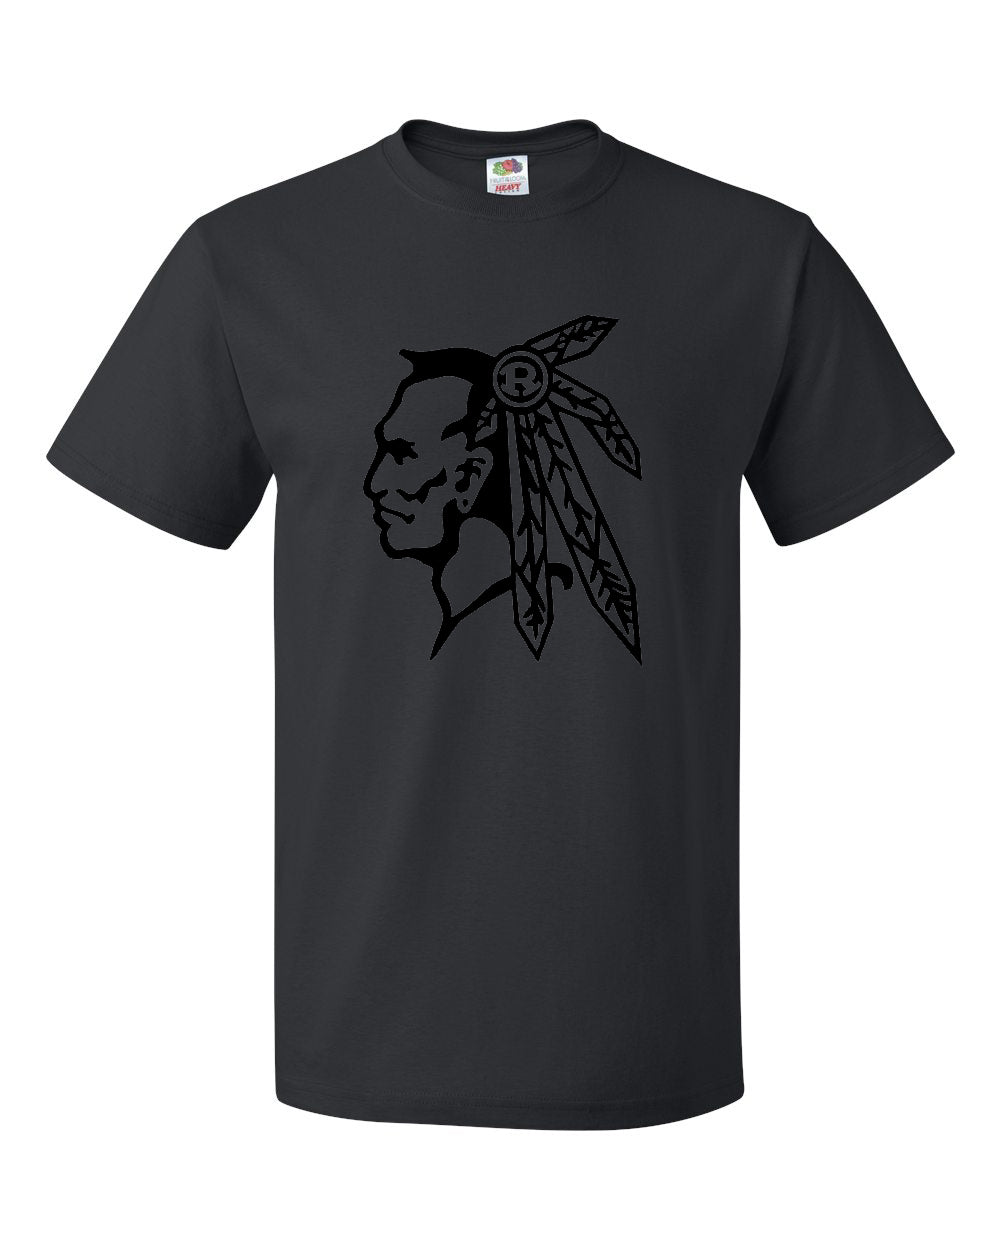 Black Out Raiderhead T-shirt